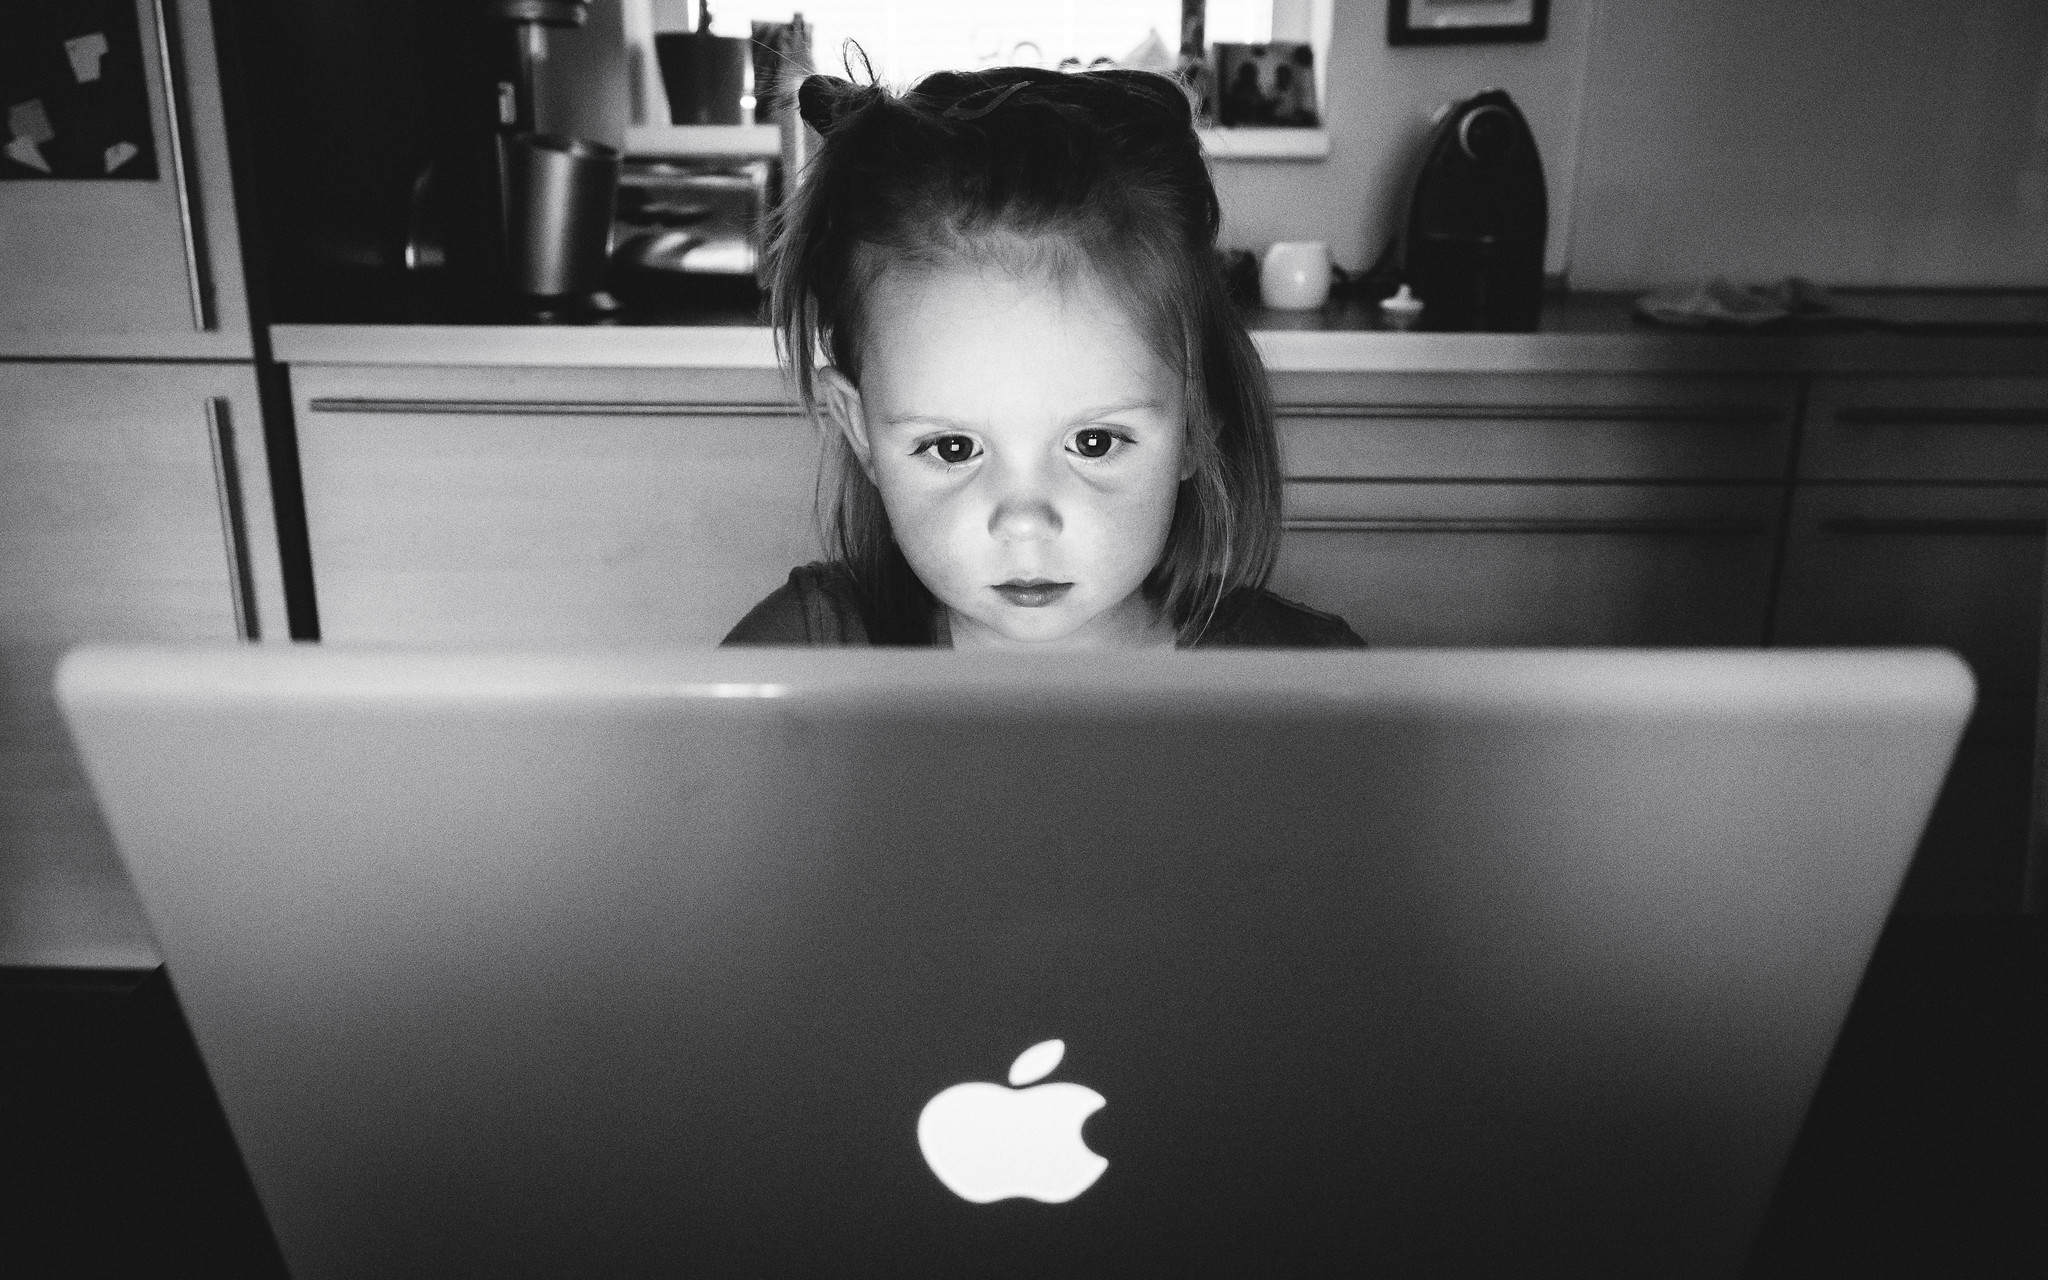 Five-year-old girl browsing a glowing laptop.